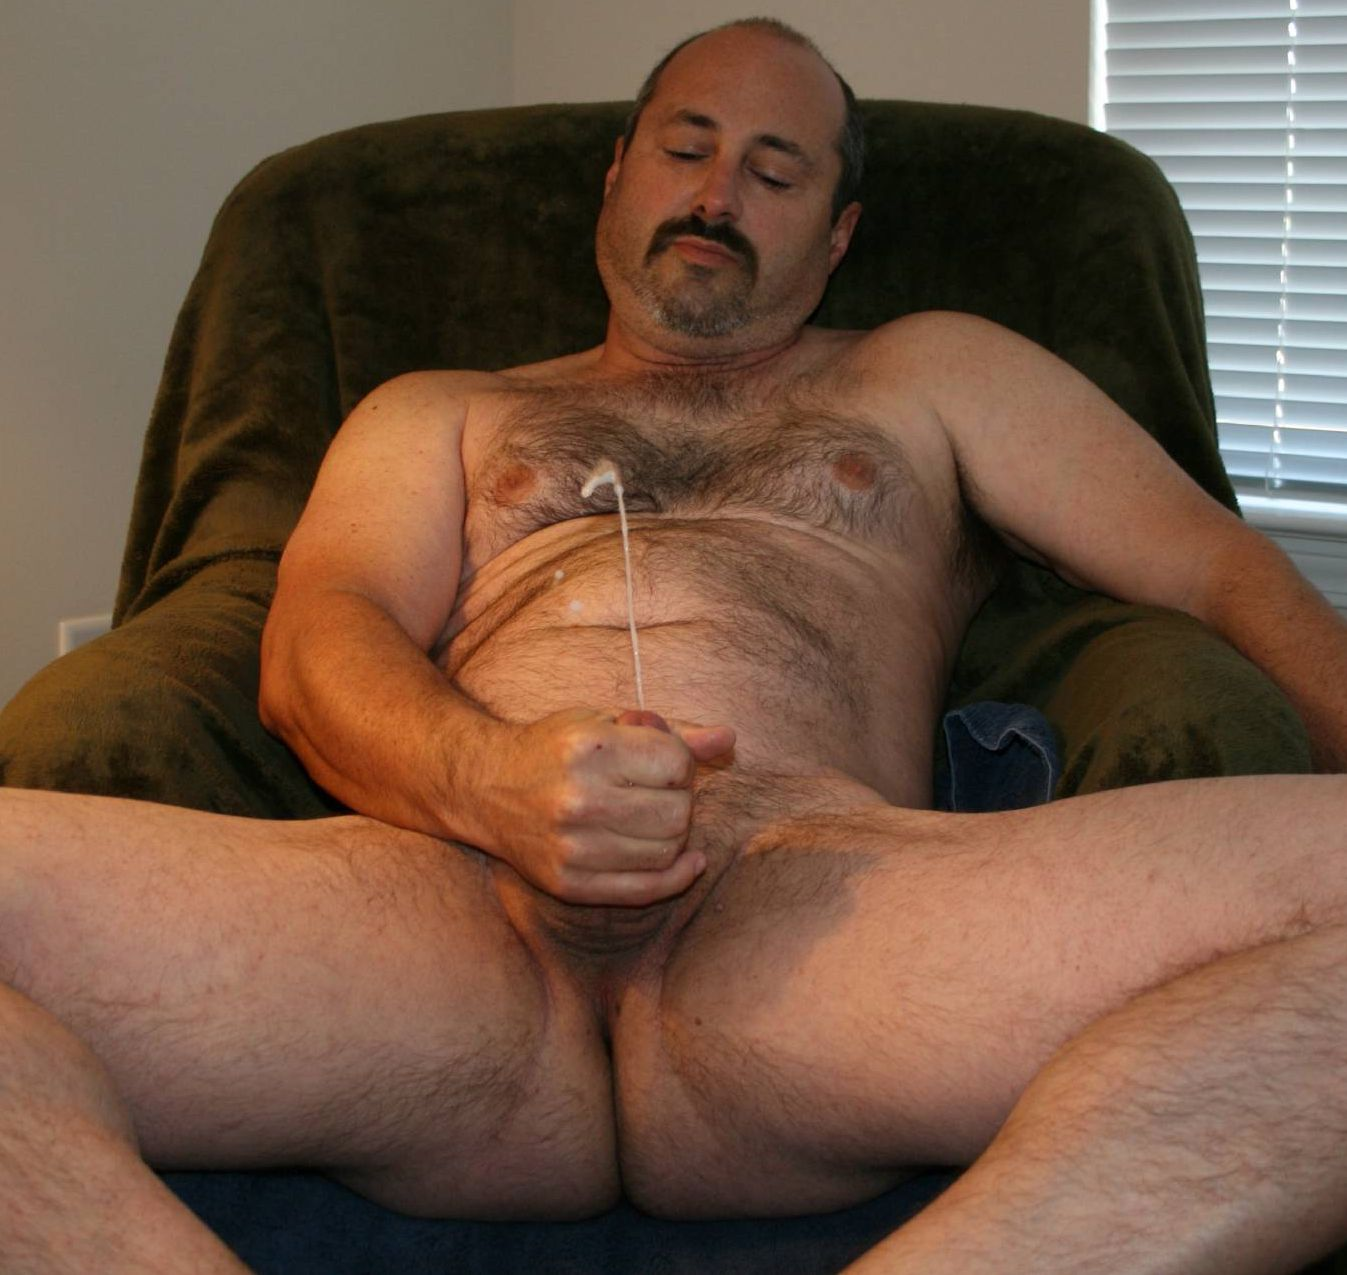 Man hot hairy mature sexy naked